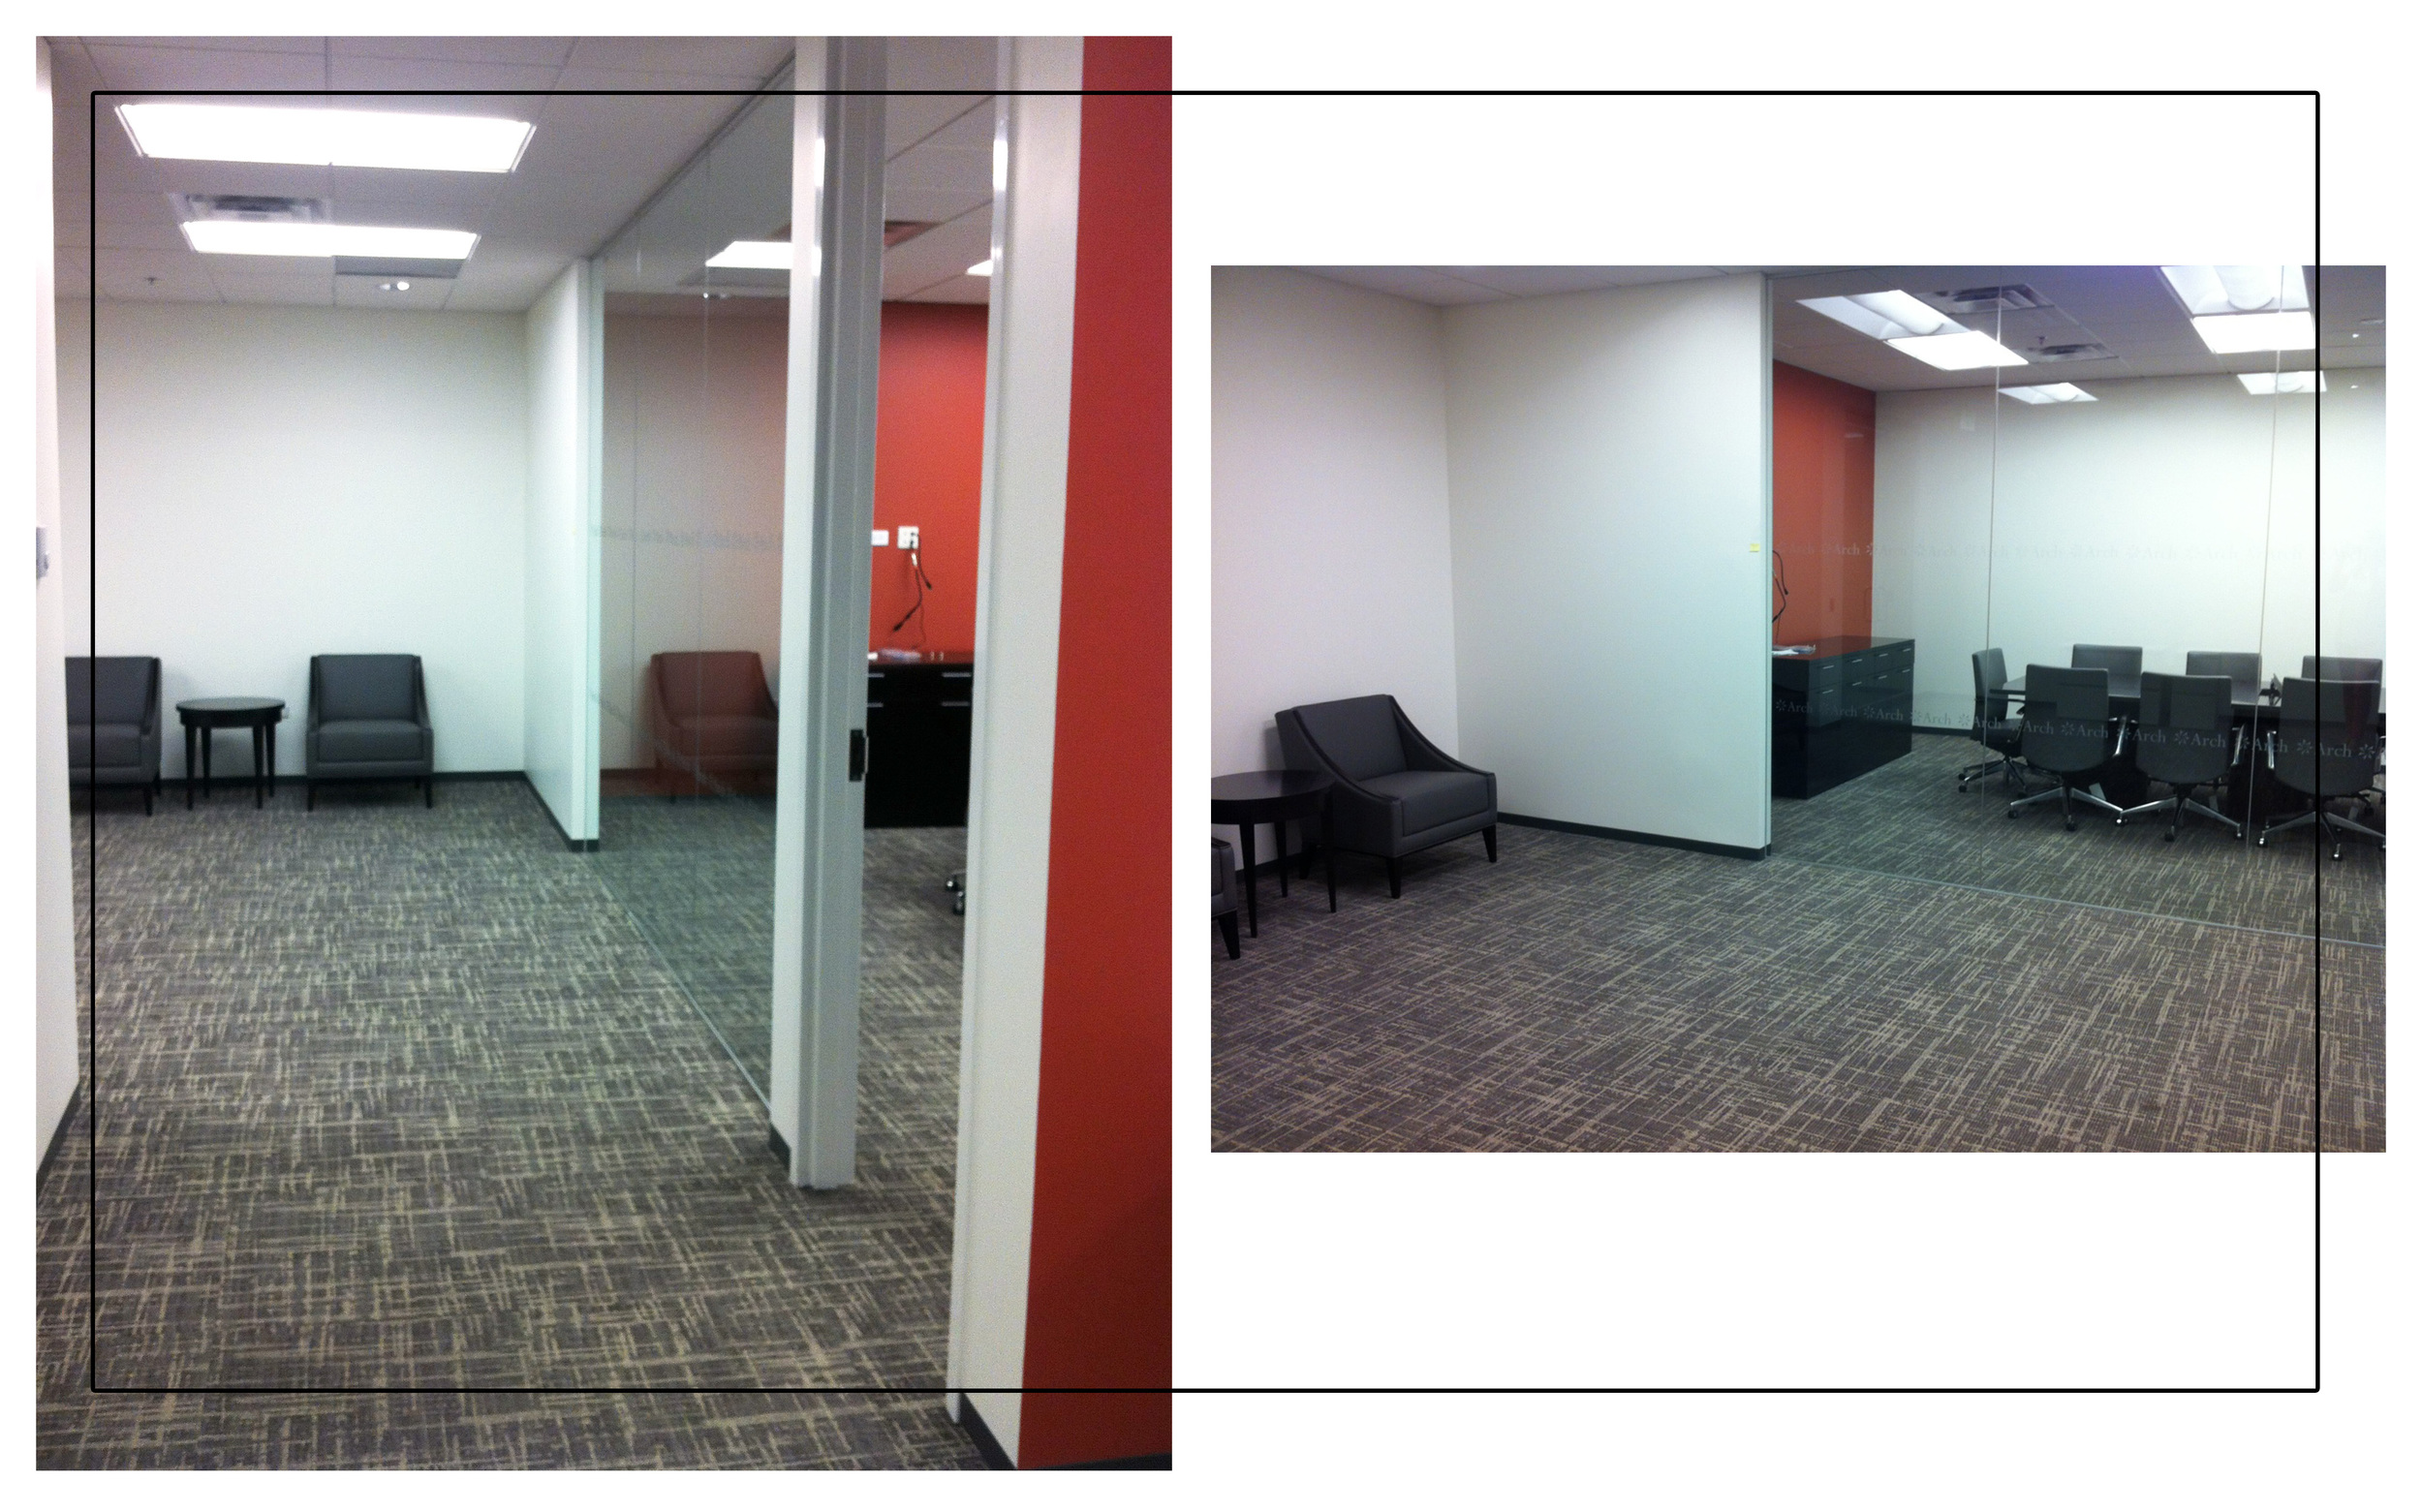 Reception and conference room views. Photograph